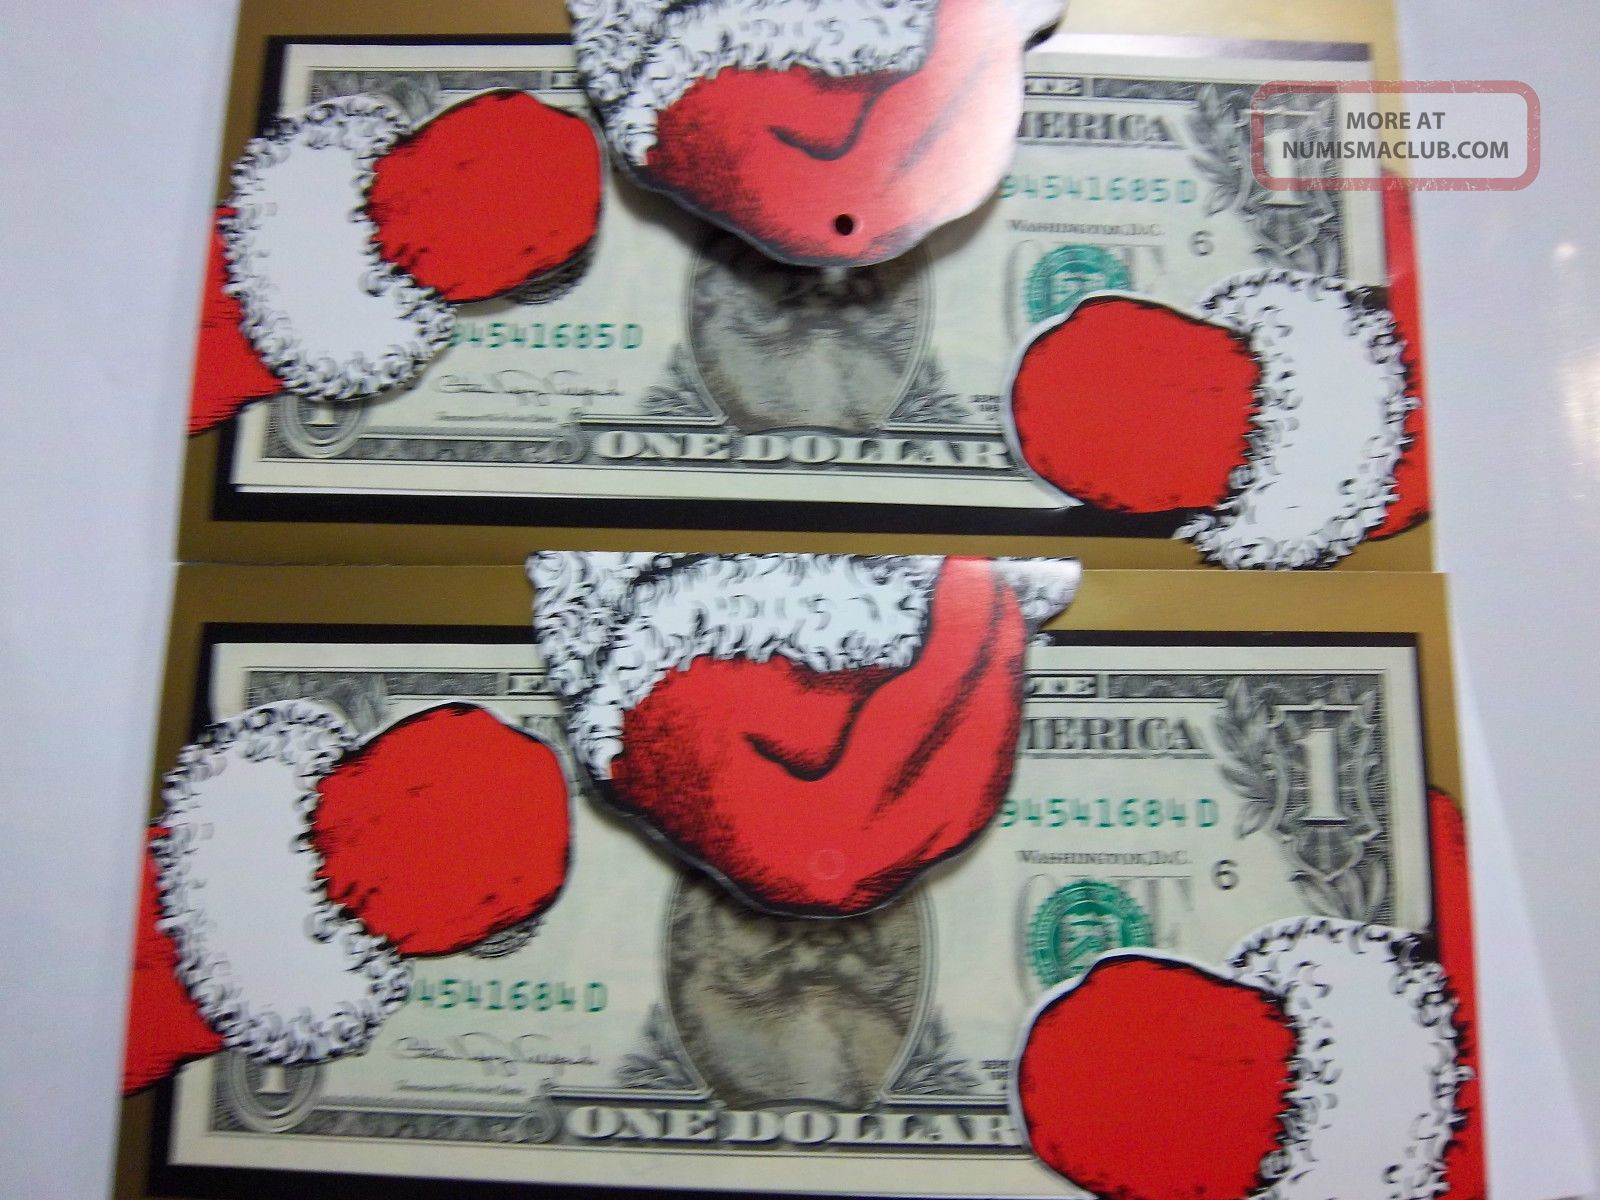 Coinhunters - Paper Dollar Bill W/photo Of Santa Unc Paper Money: US photo